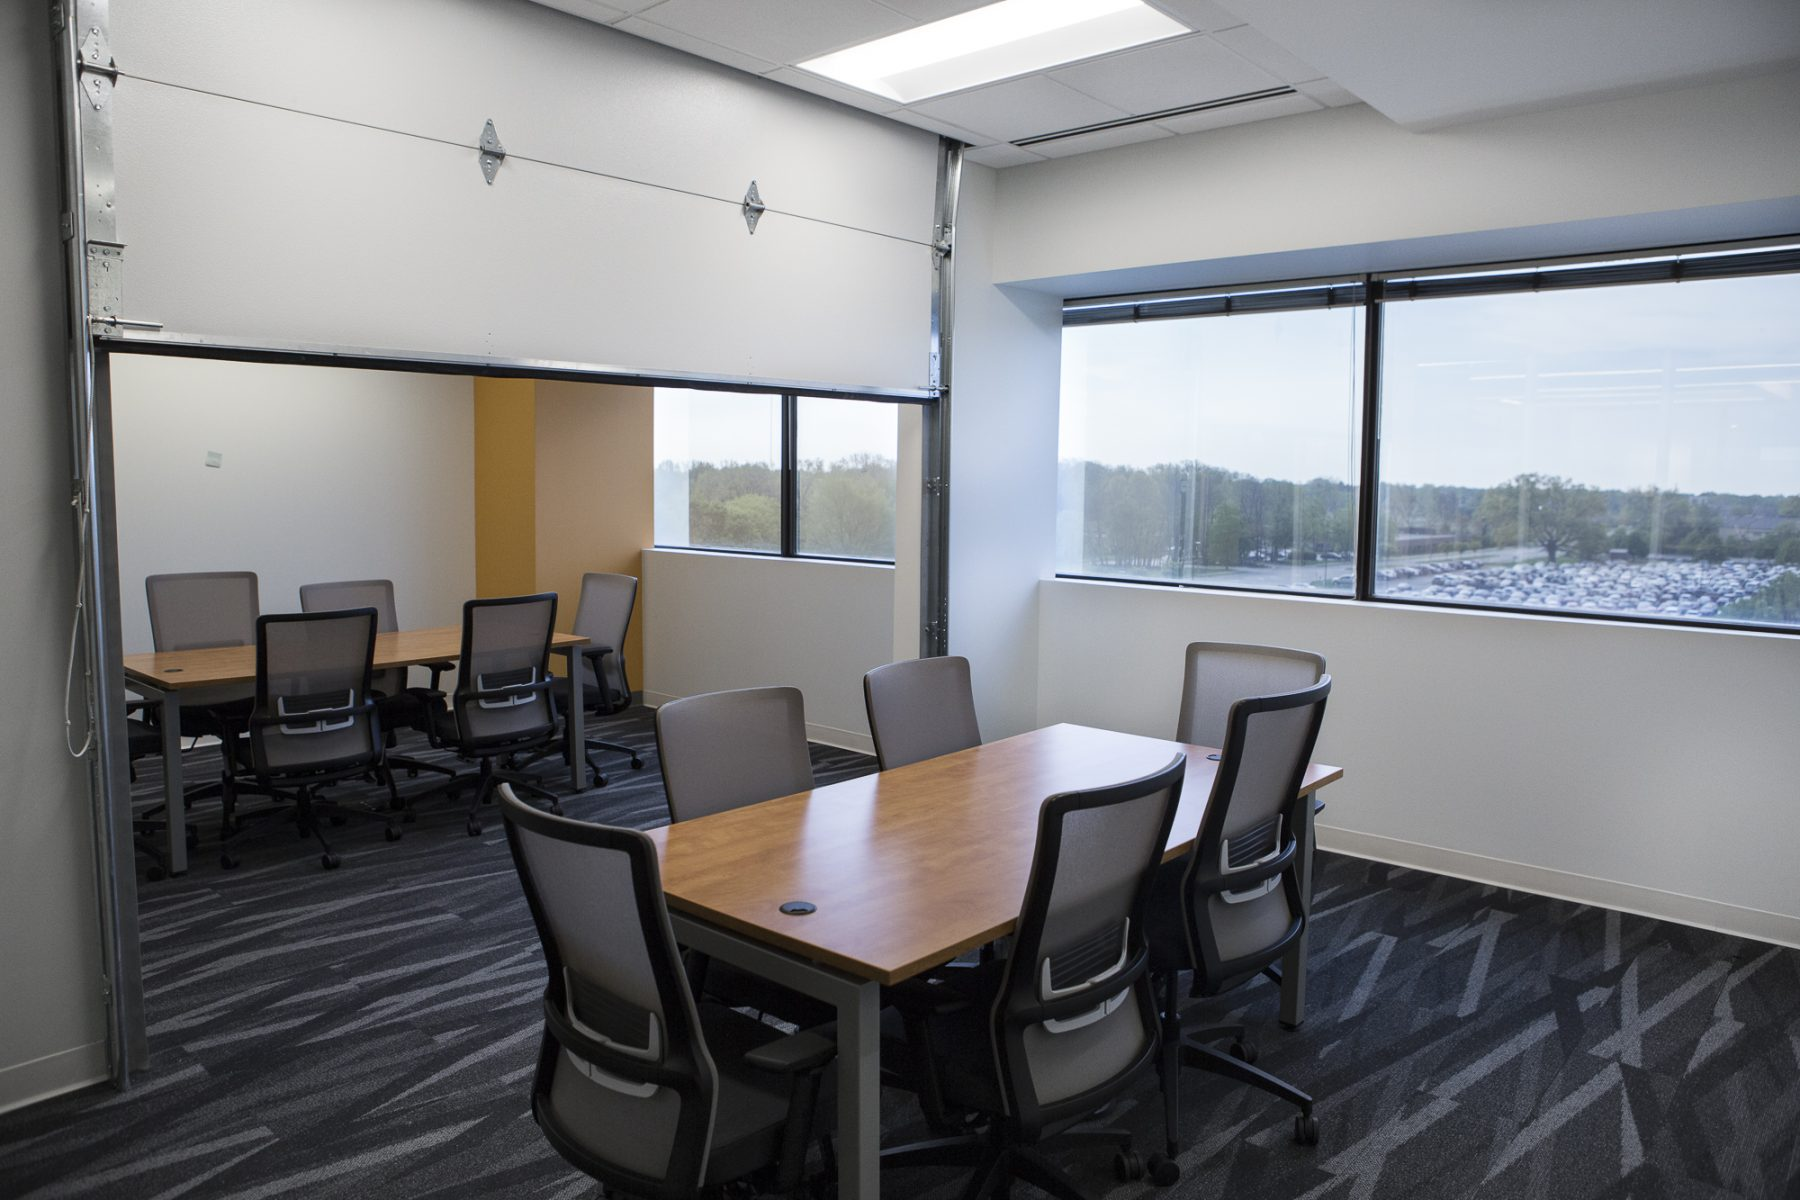 clinical-architects-capital-construction-indianapolis-6